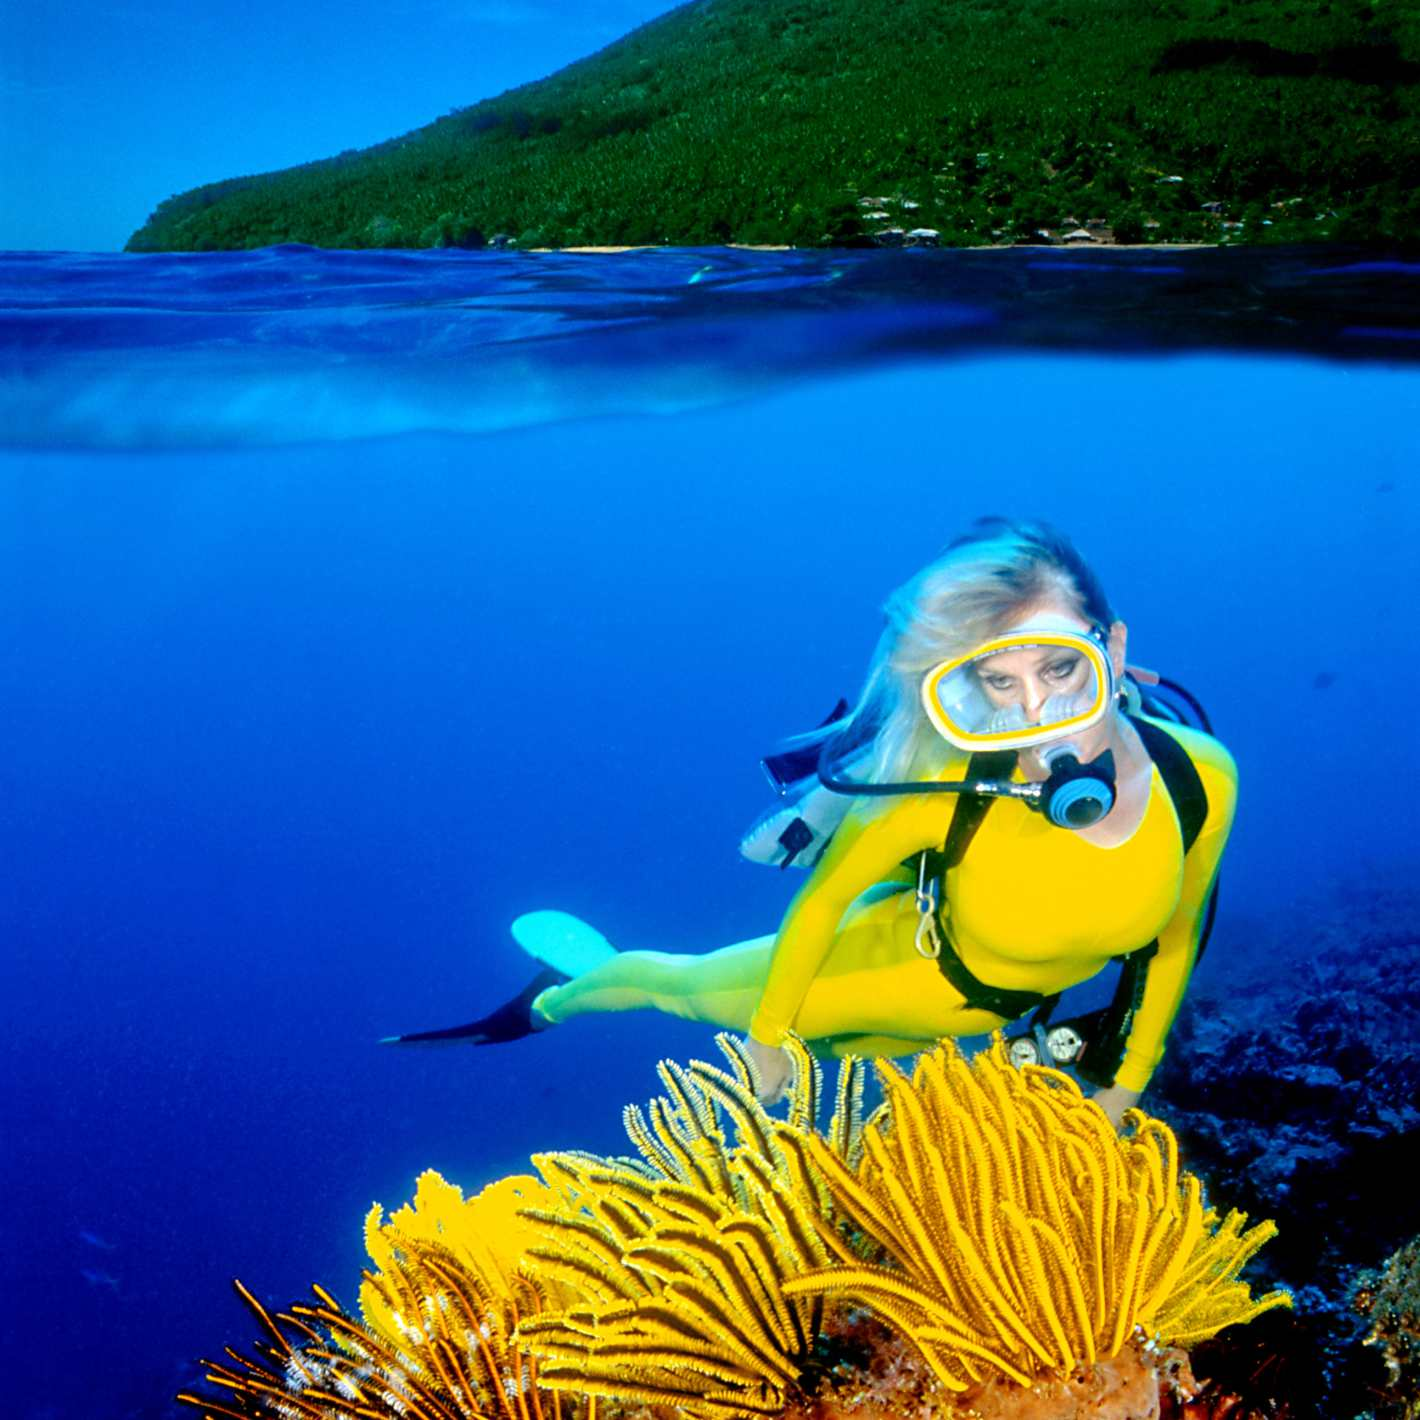 Scuba Diver Explores the Ocean on Her First Dive